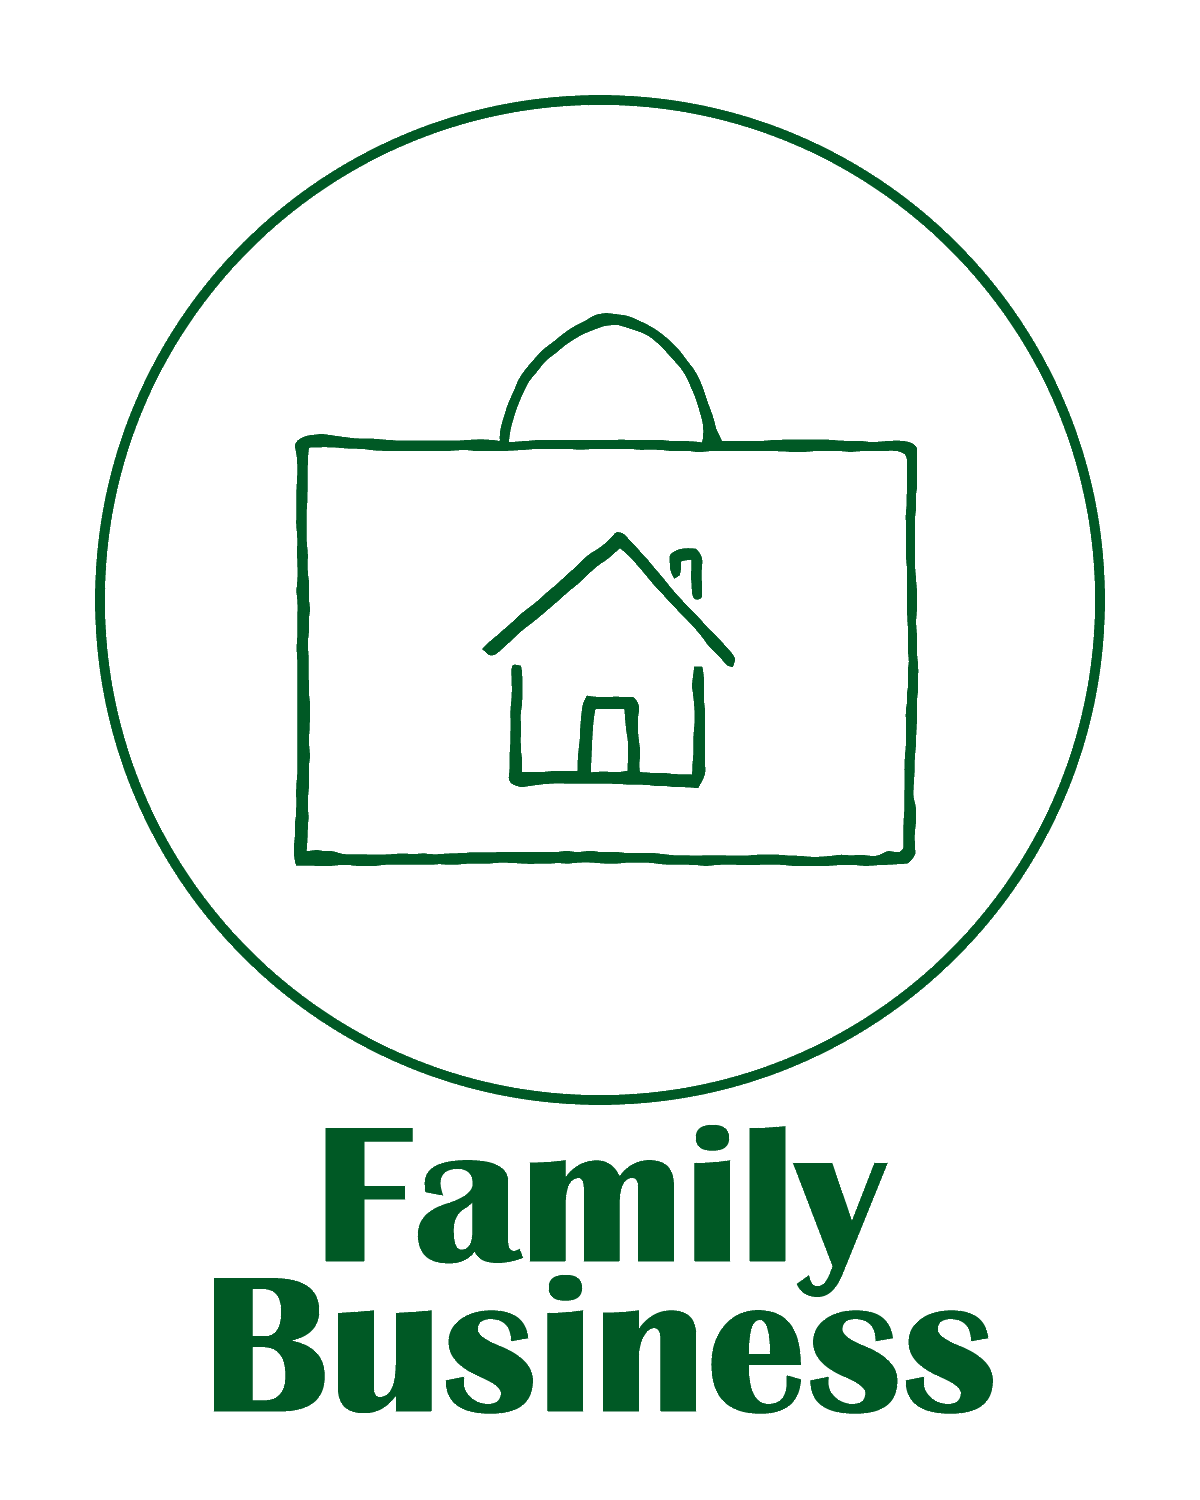 The Green Bundle Family Business Logo